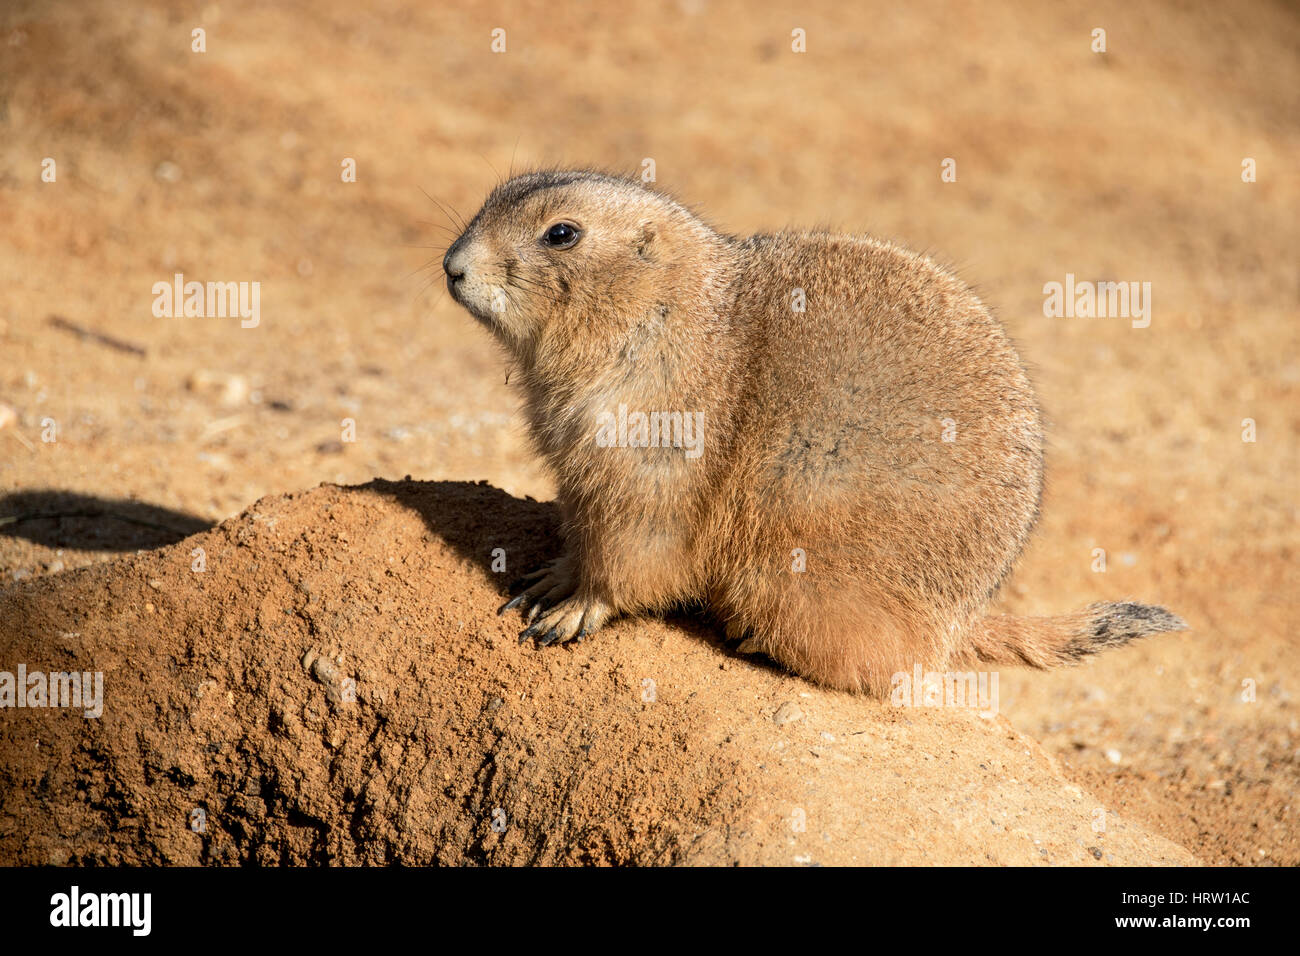 Prairie Dog photographed up close. Prairie dogs (genus Cynomys) are herbivorous burrowing rodents native to the - Stock Image